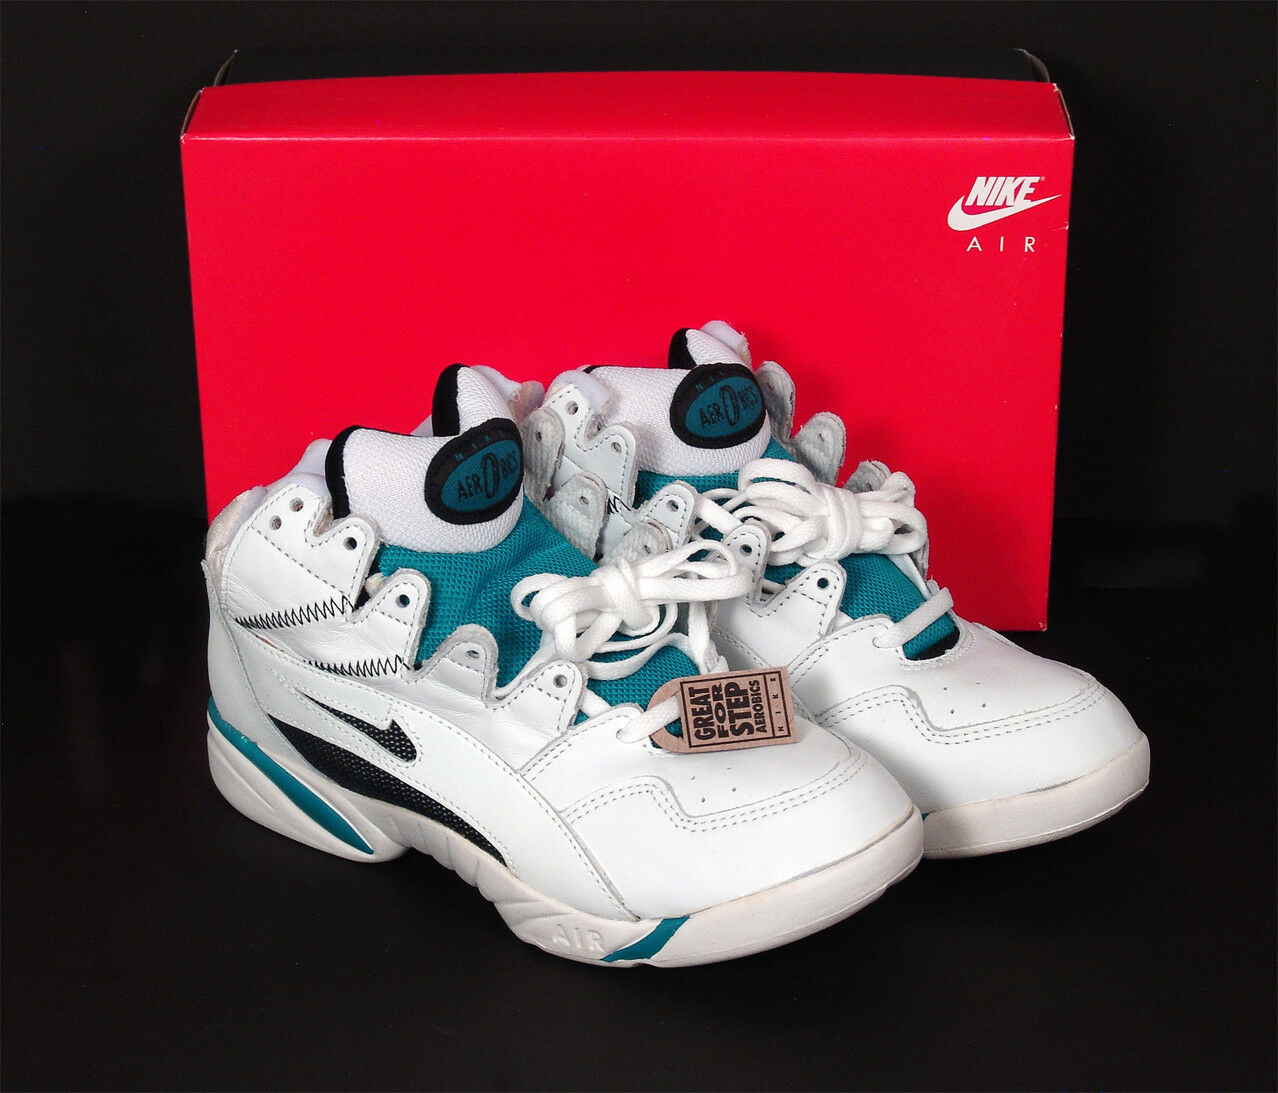 Authentic Original 1990s Nike Air Stat Repeater Aerobic Sneakers & Box Sz 7  NOS